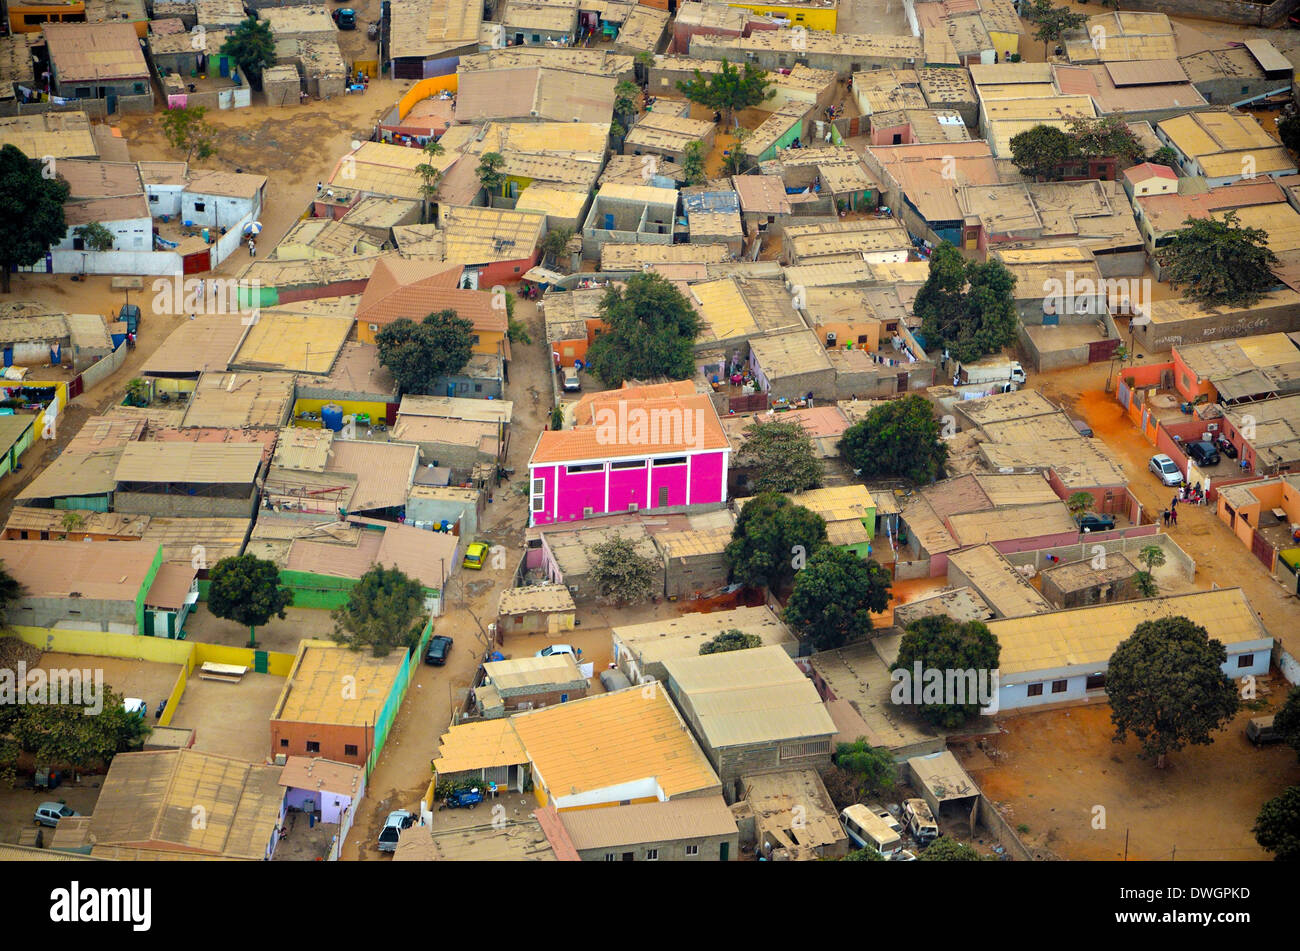 Luanda from the air. Angola, Africa - Stock Image